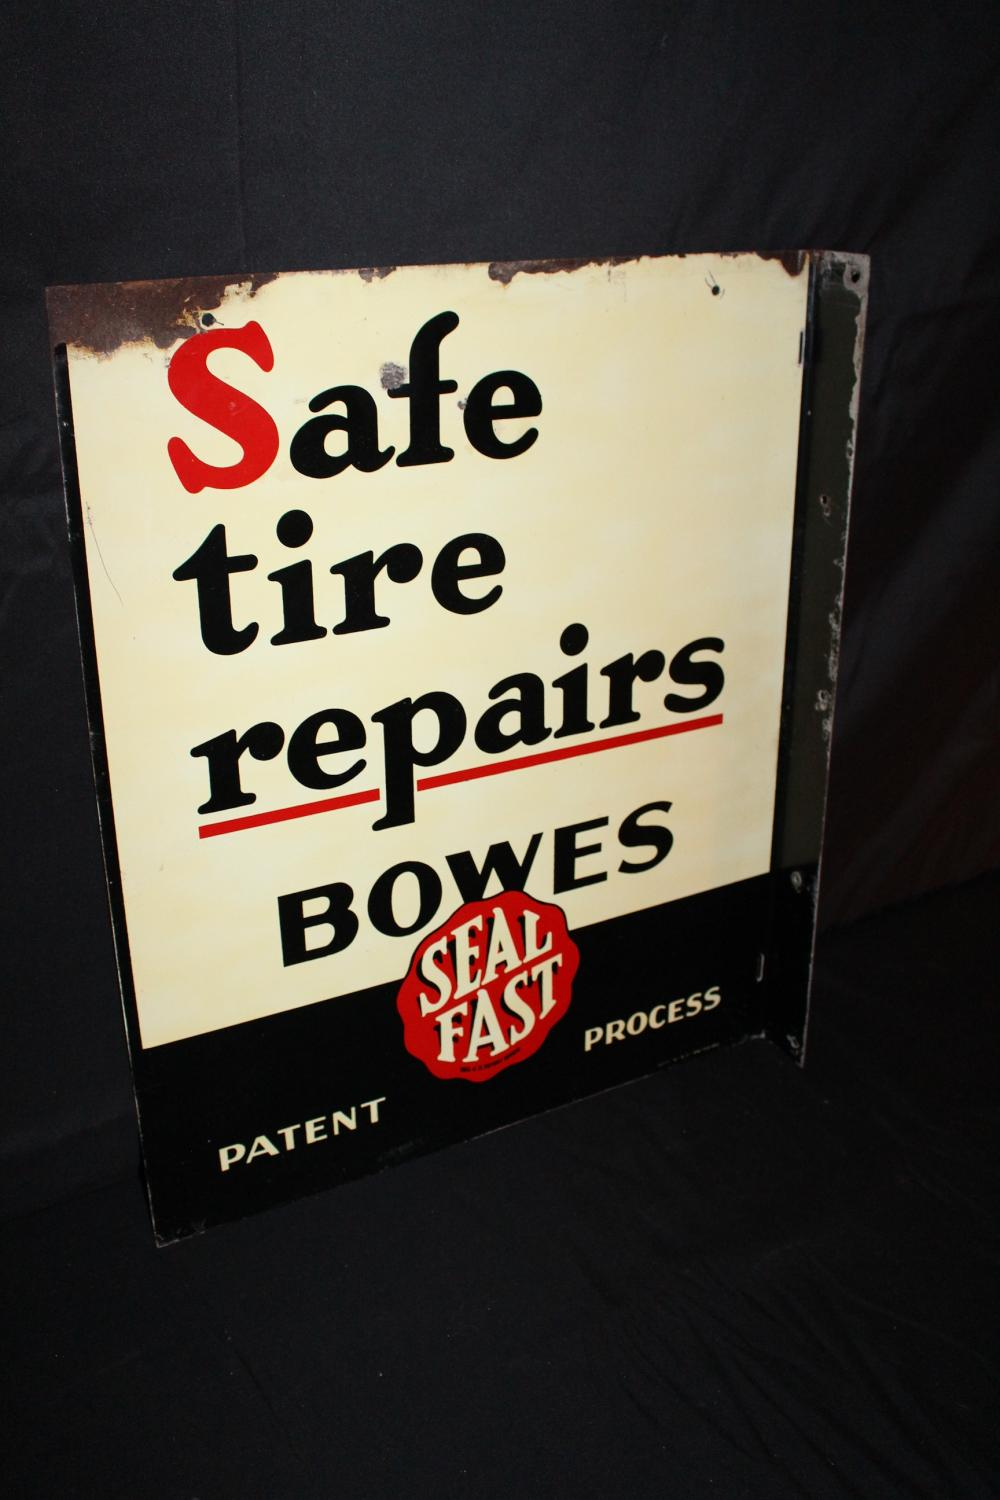 BOWES SEAL FAST TIRE REPAIR FLANGE SIGN